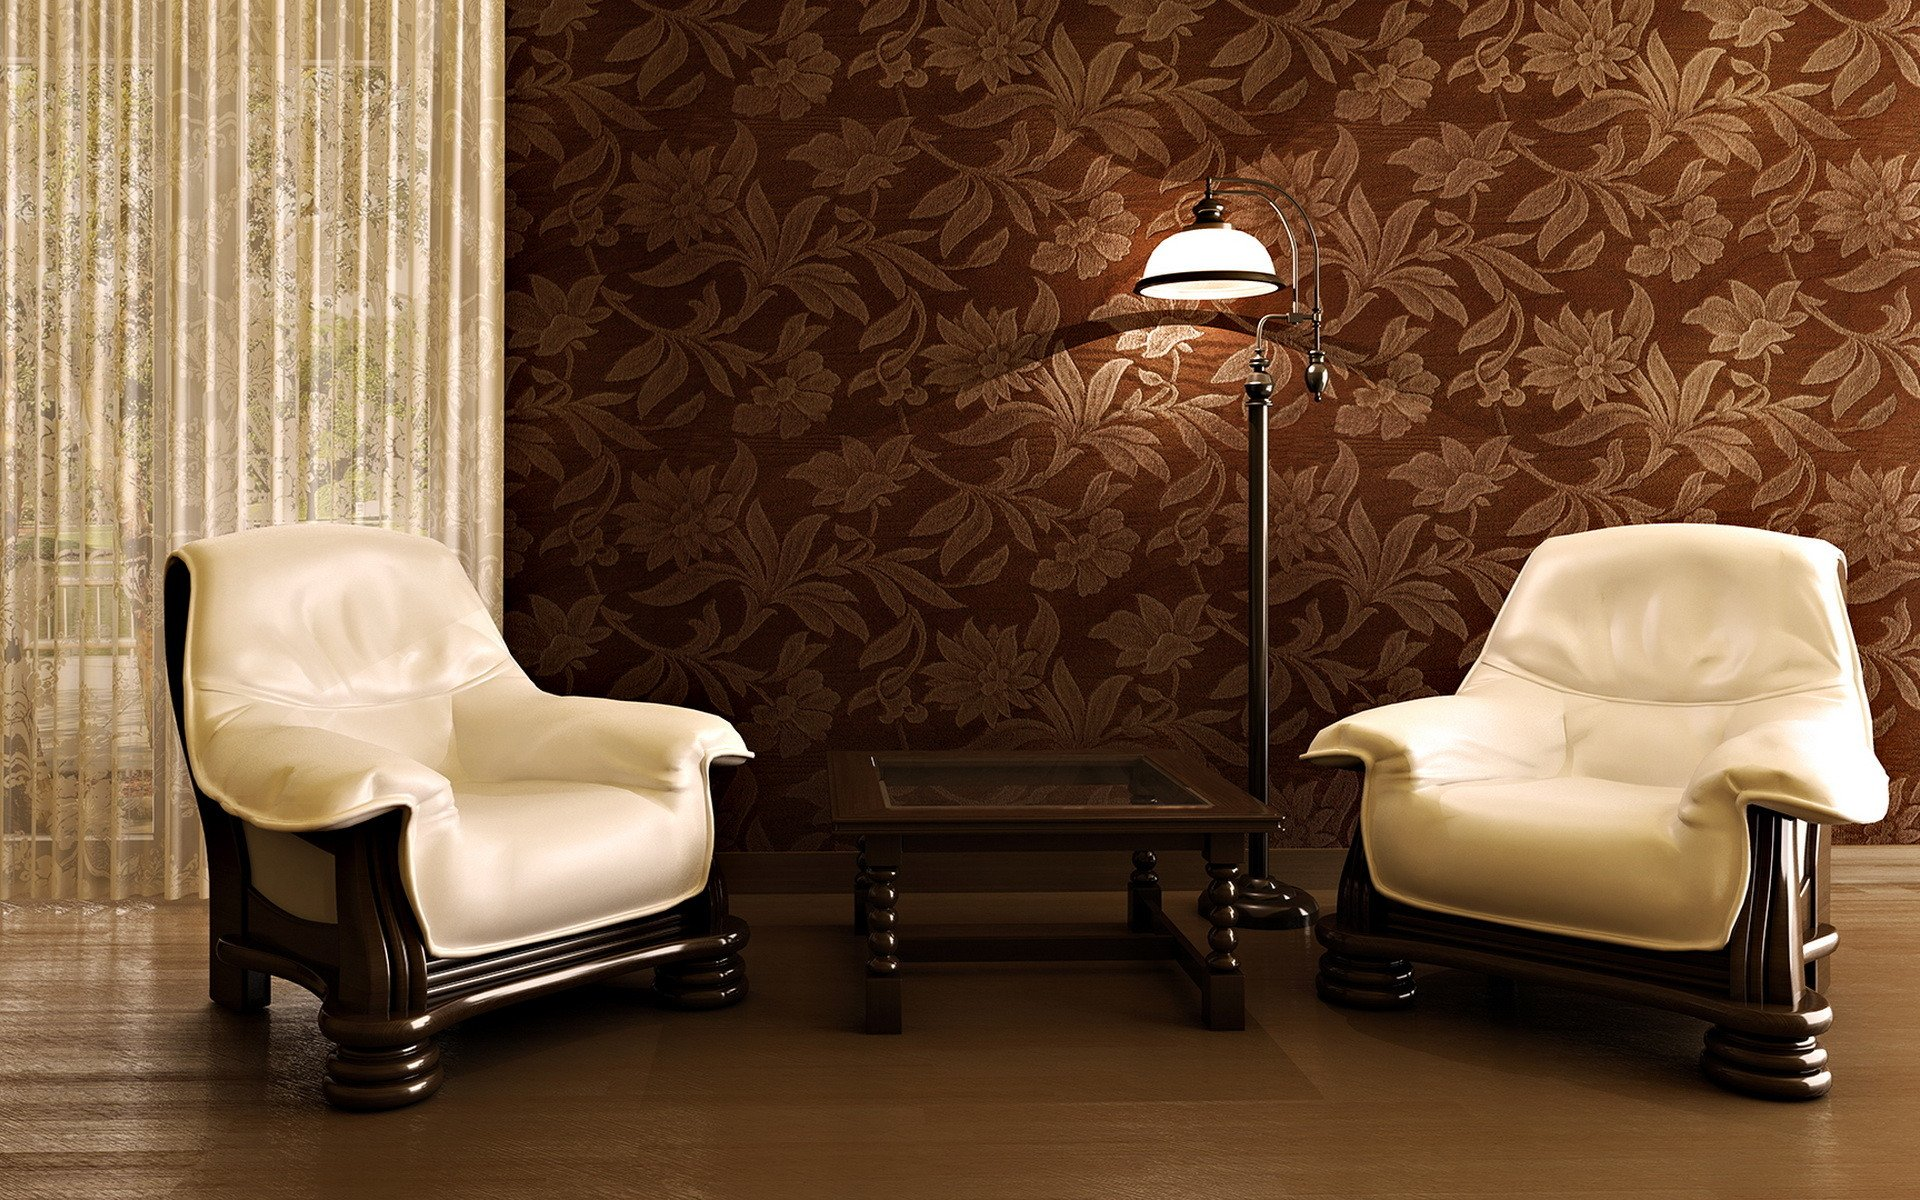 Wallpaper for Living Room Ideas New Wallpapers for Living Room Design Ideas In Uk